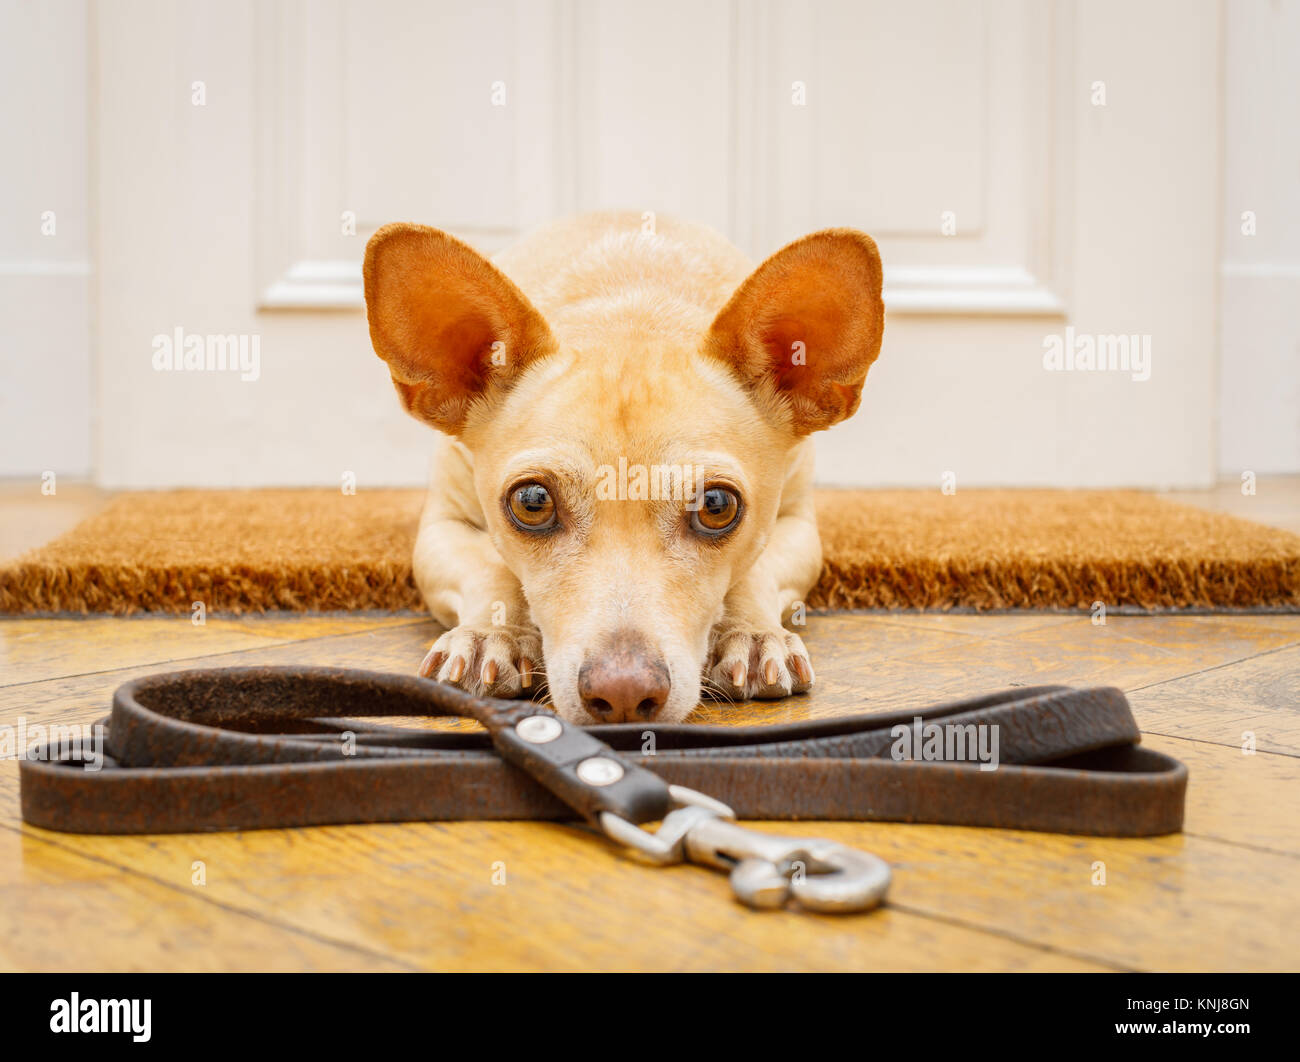 poidenco chihuahua dog waiting for owner to play  and go for a walk on doormat with leash on the floor ,behind home - Stock Image